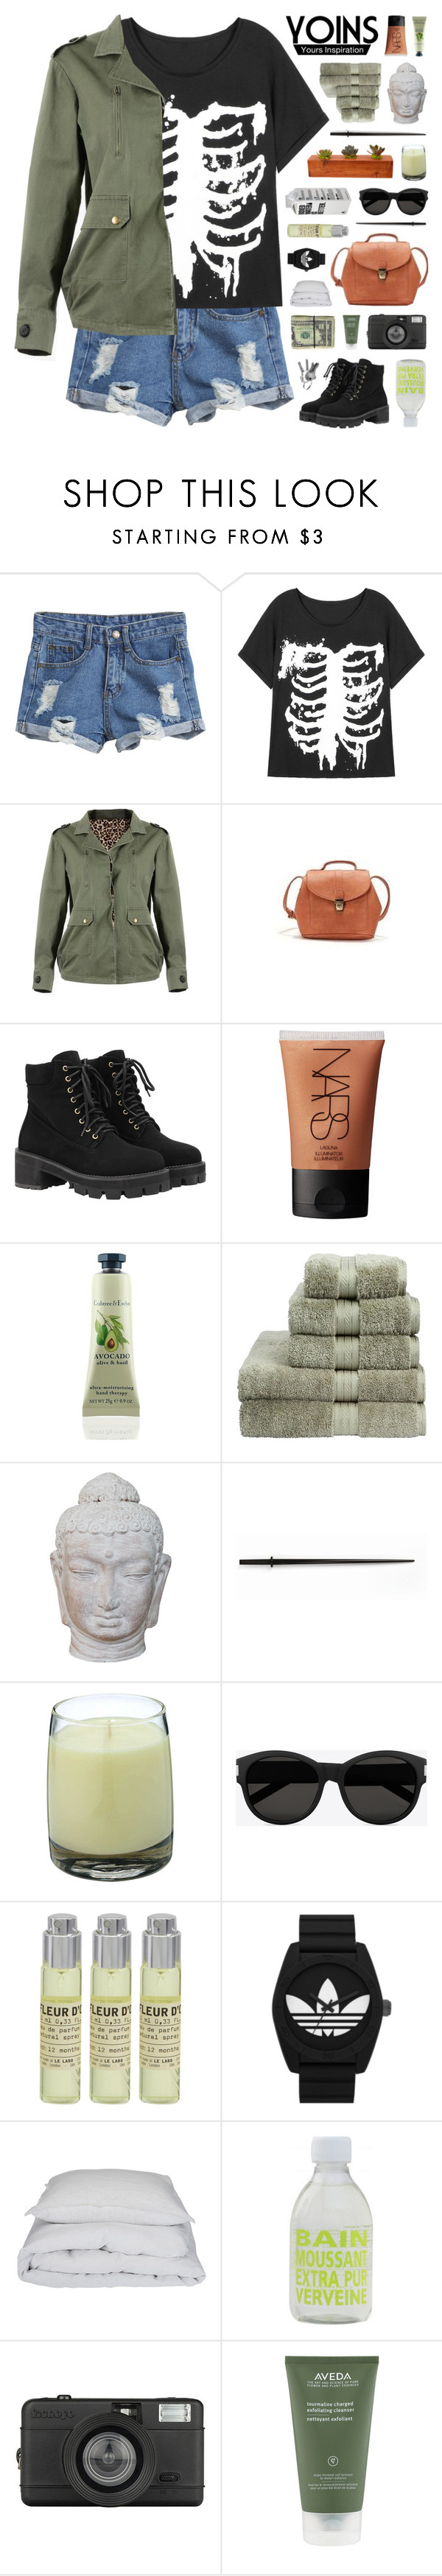 """""""Yoins #3"""" by hhuricane ❤ liked on Polyvore featuring WithChic, NARS Cosmetics, Christy, Puji, Kikkerland, Le Labo, Yves Saint Laurent, adidas Originals, By Nord and La Compagnie de Provence"""